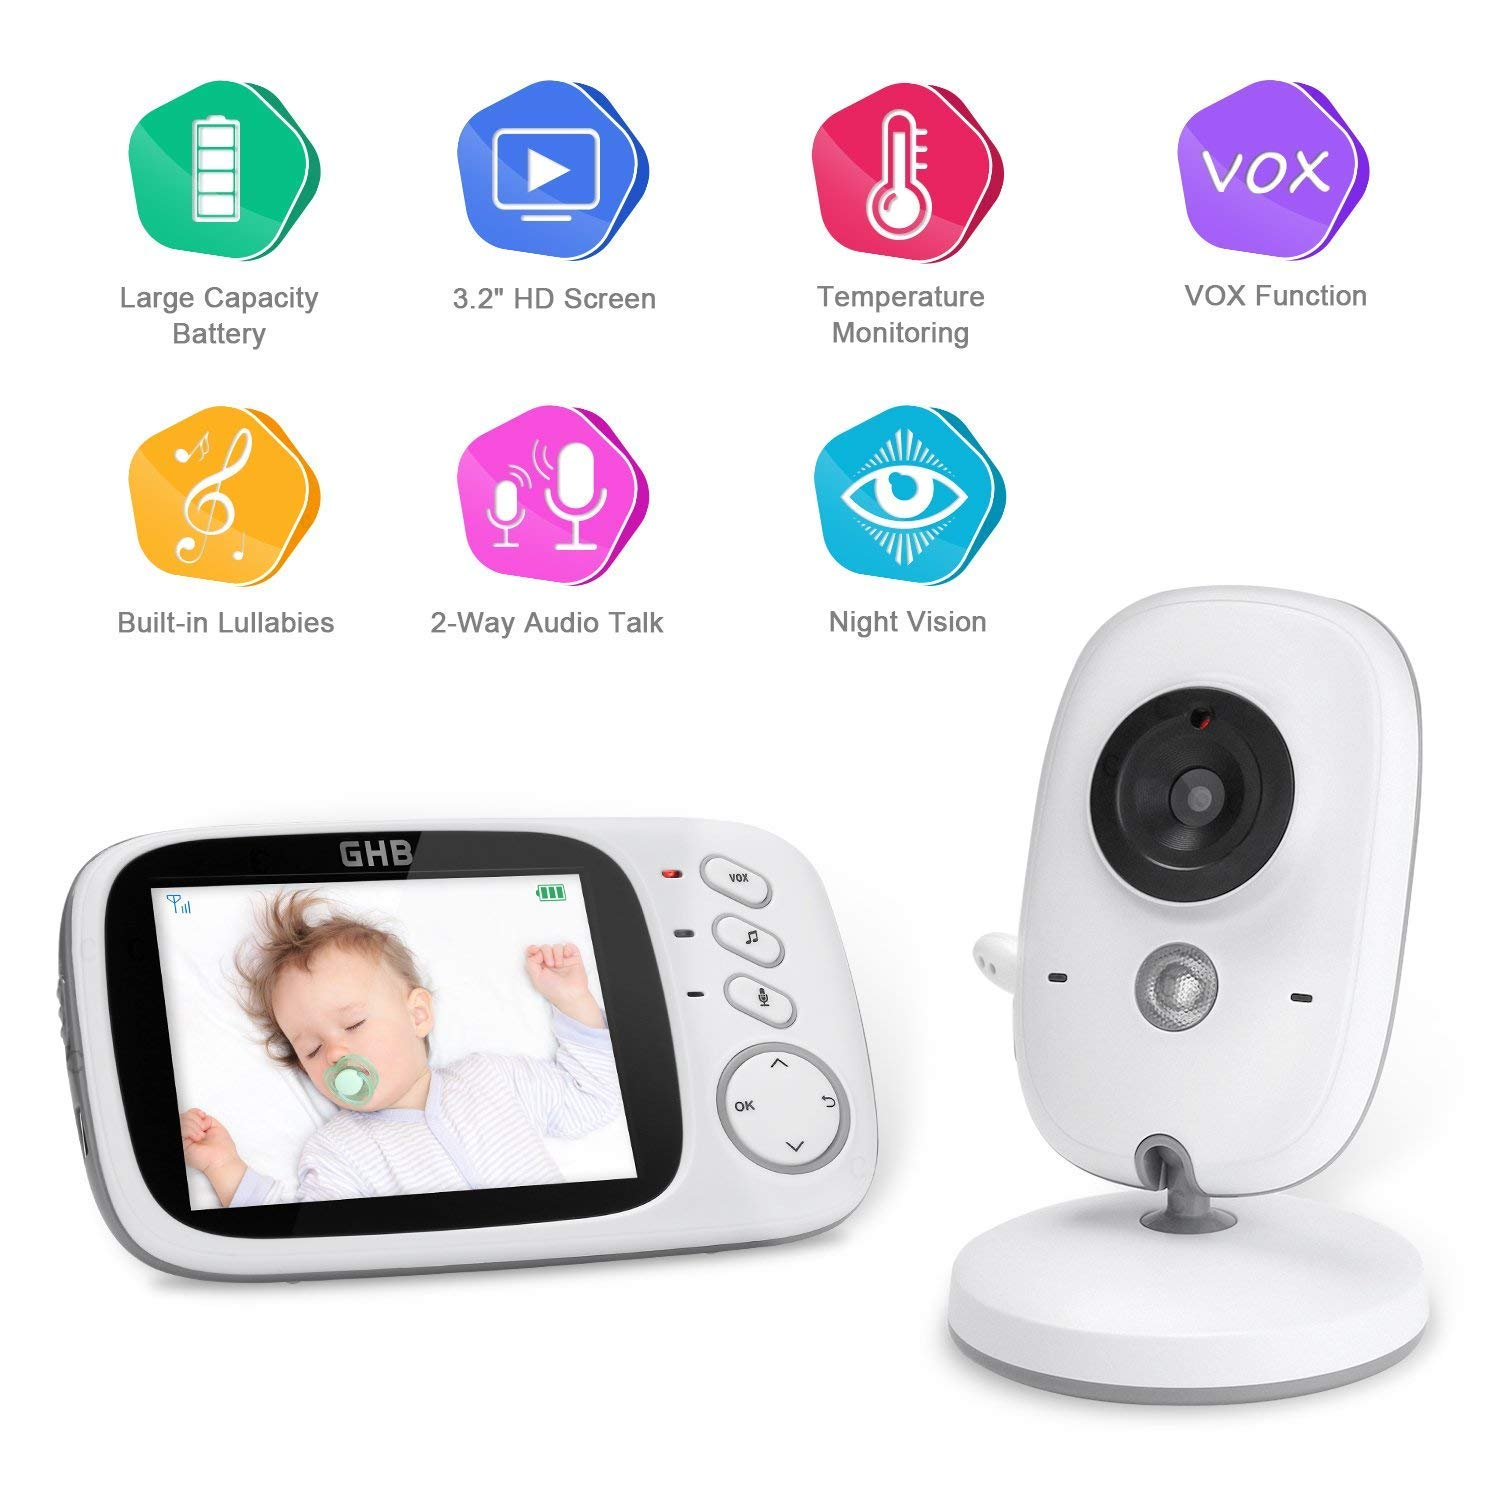 GHB Baby Monitor Camera Video Digital Security 2.4GHz Two Way Realtime Audio Talk Night Vision Temperature Monitoring 2.0 Display Smile&Satisfaction GHB_01